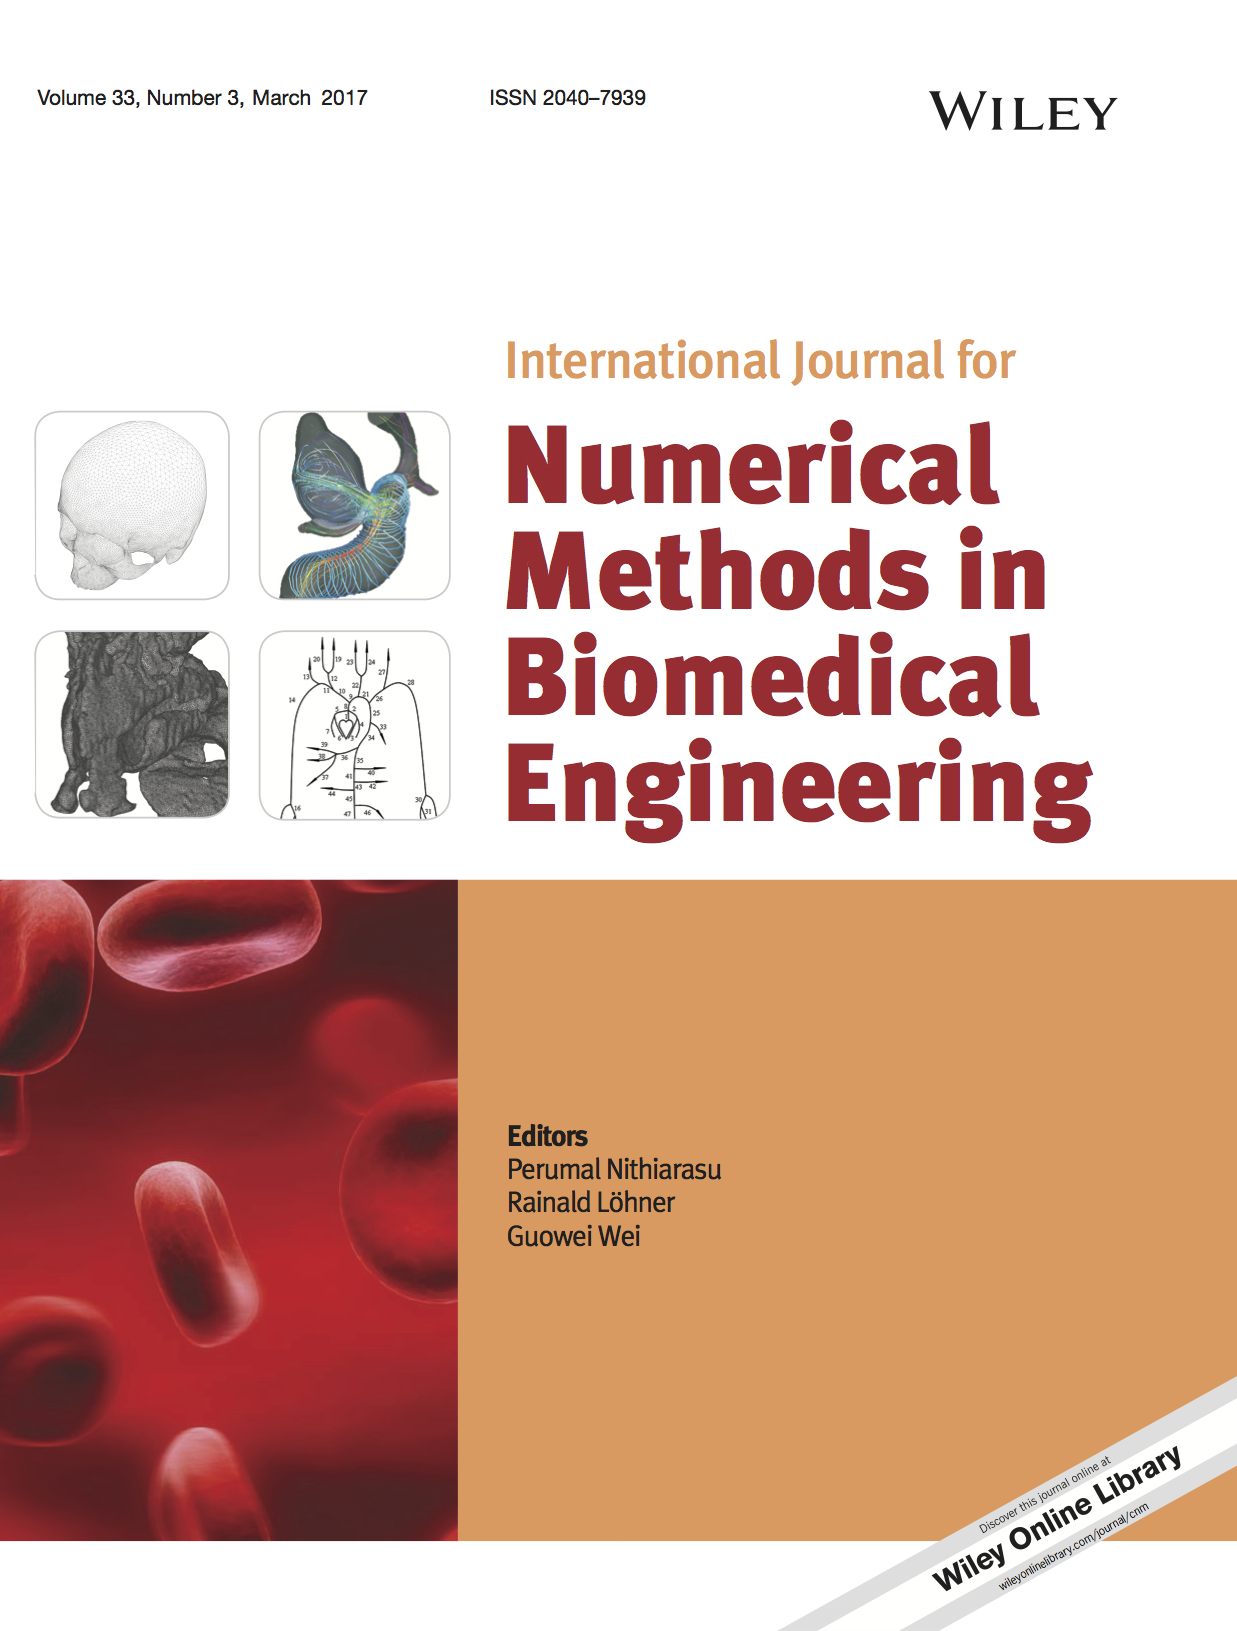 Template for submissions to International Journal for Numerical Methods in Biomedical Engineering